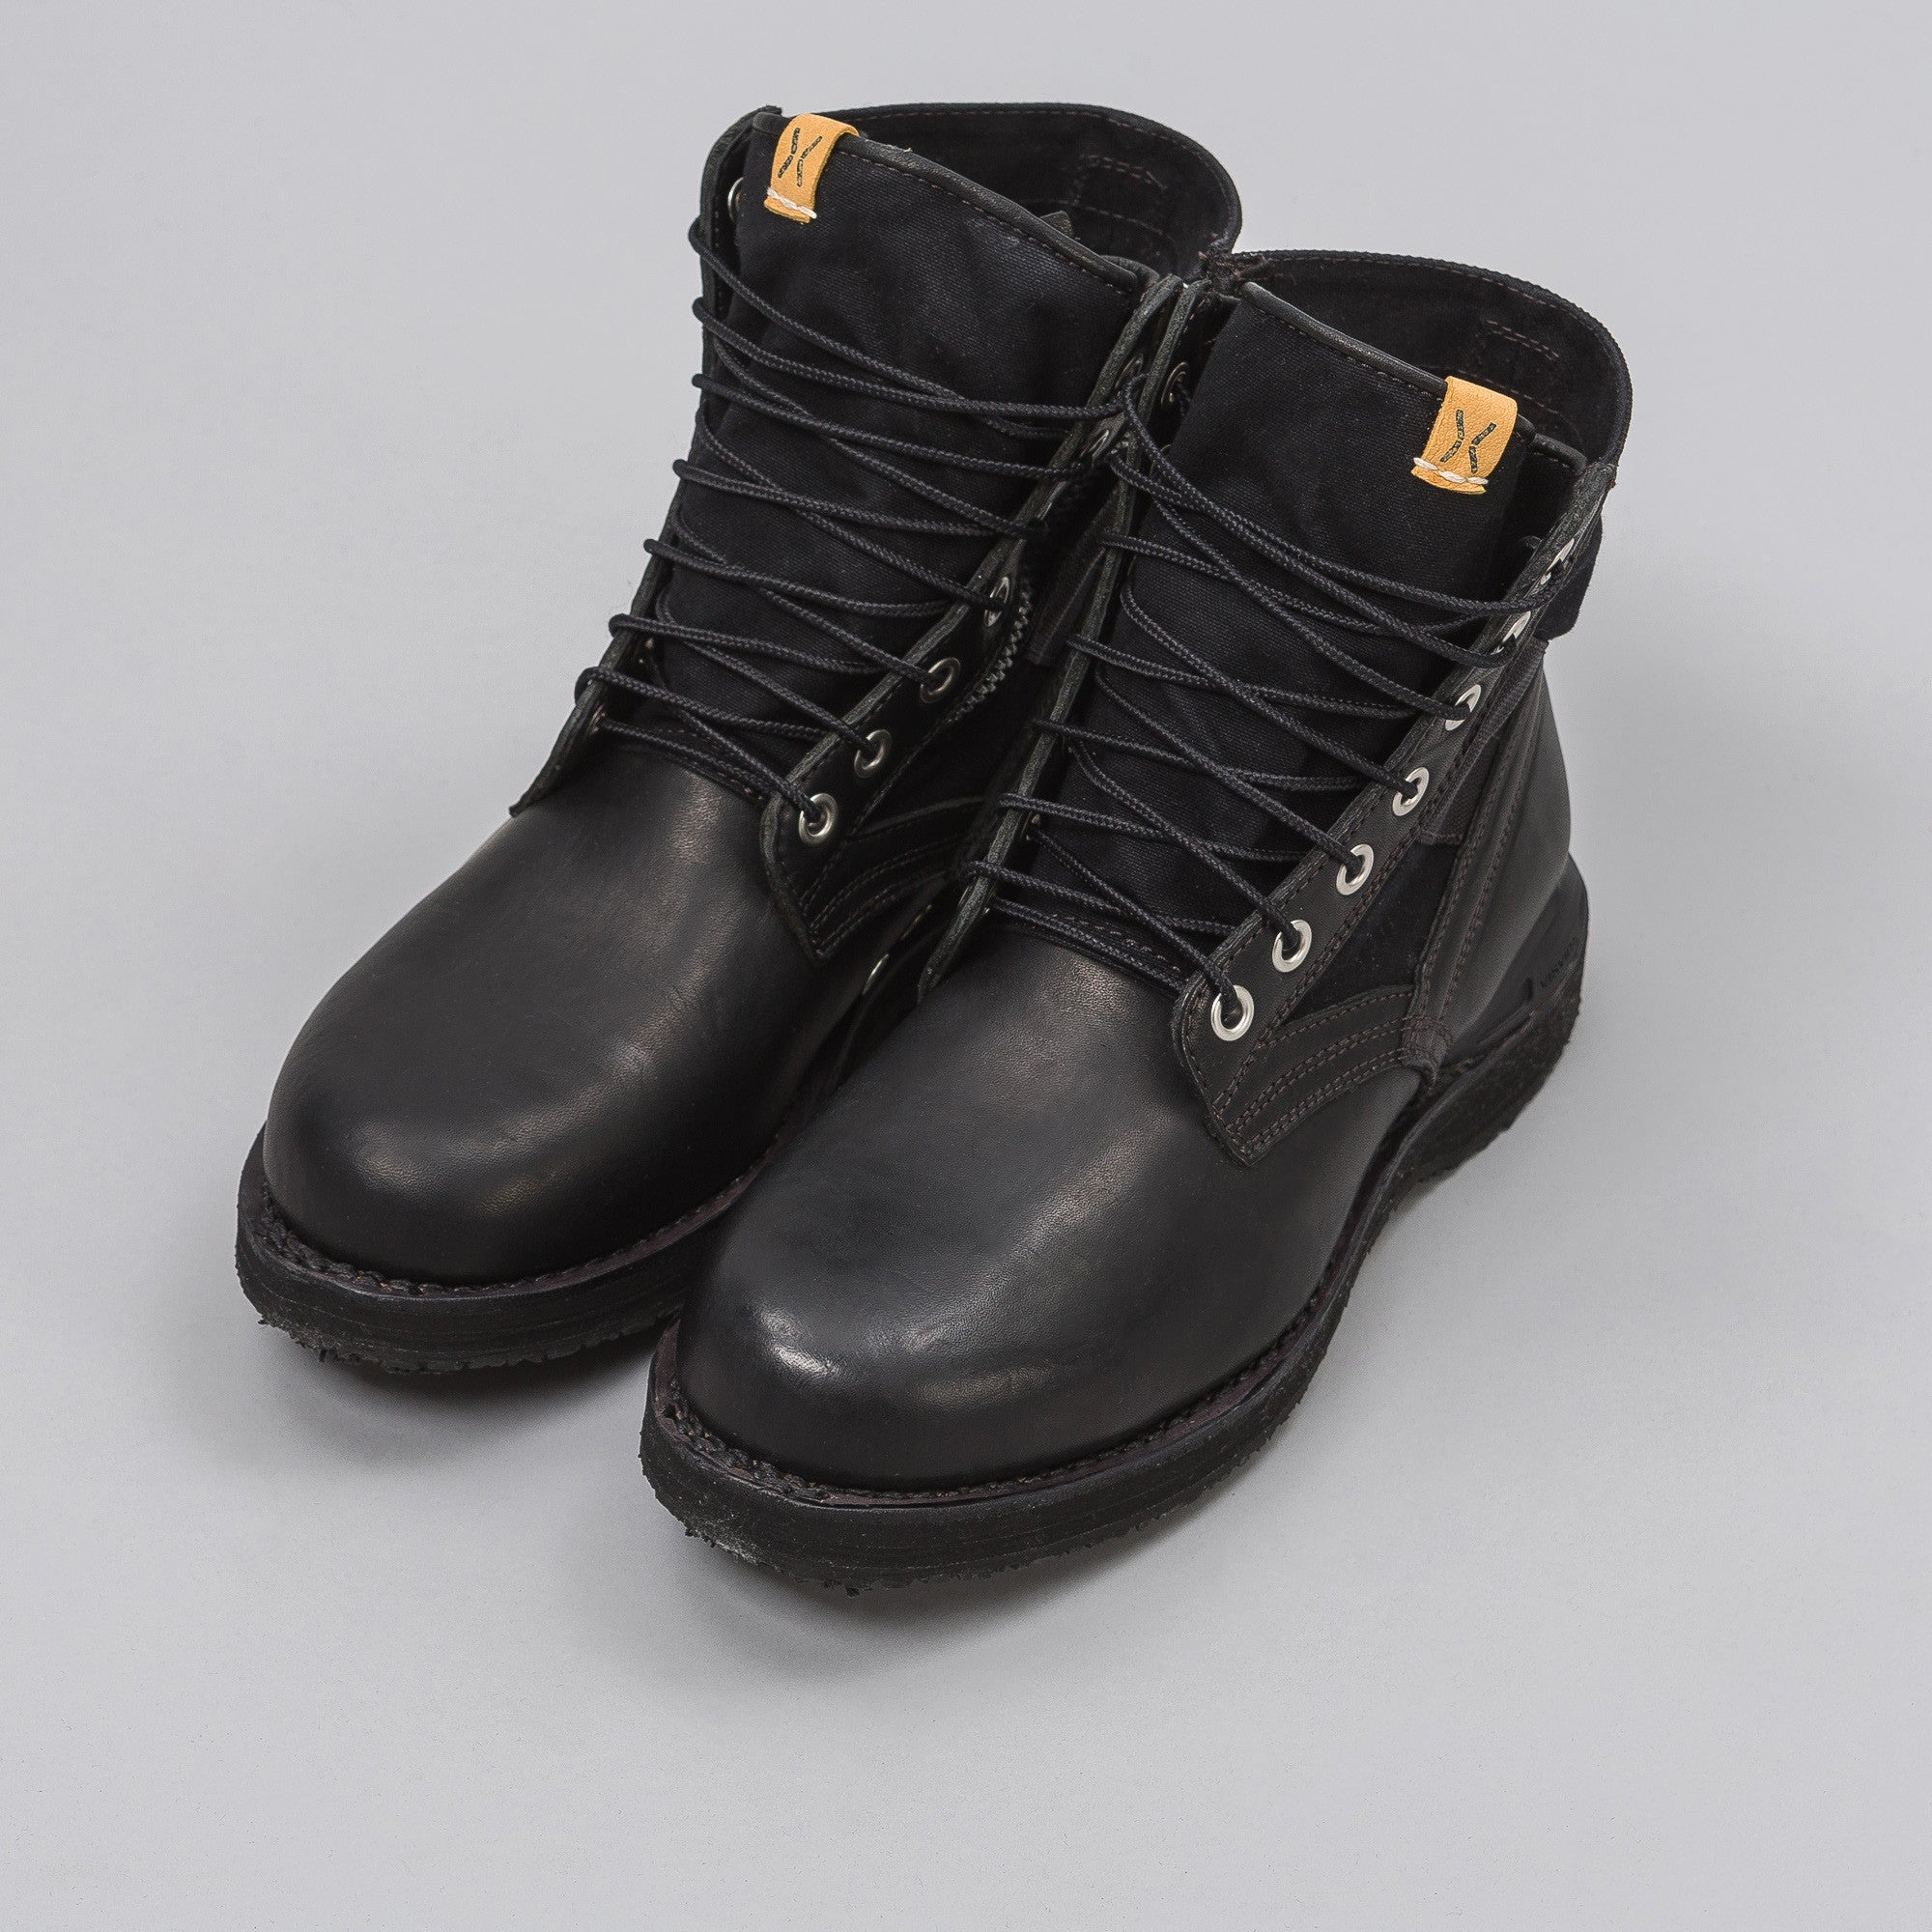 7-Hole '73-Folk Boot in Black